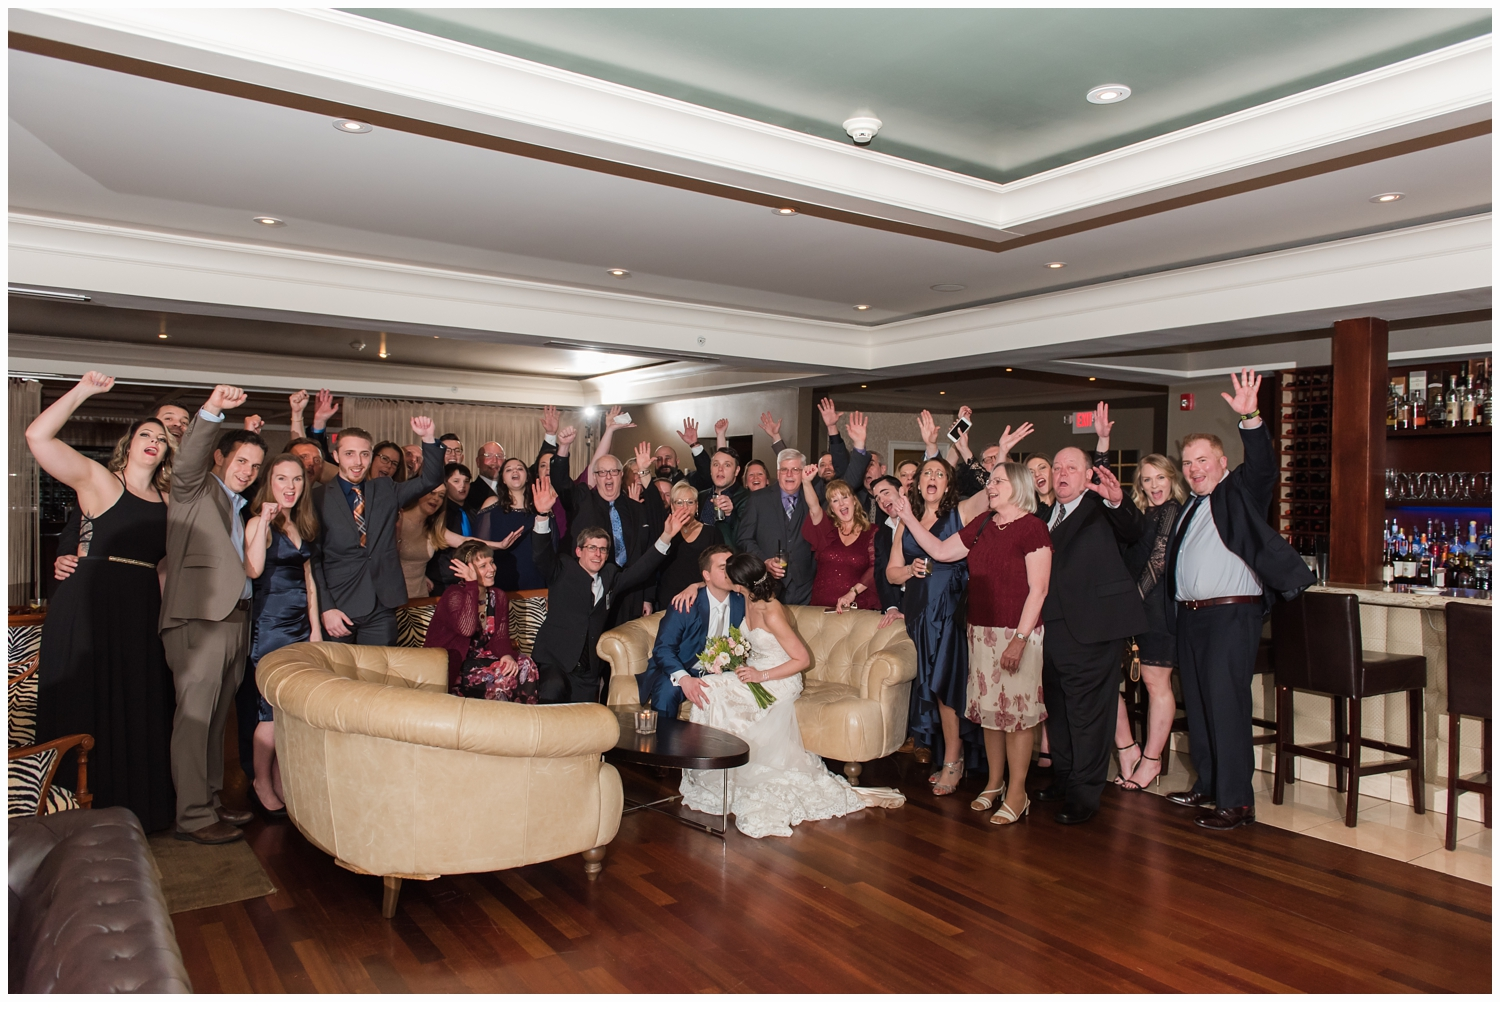 all wedding guests in one photo